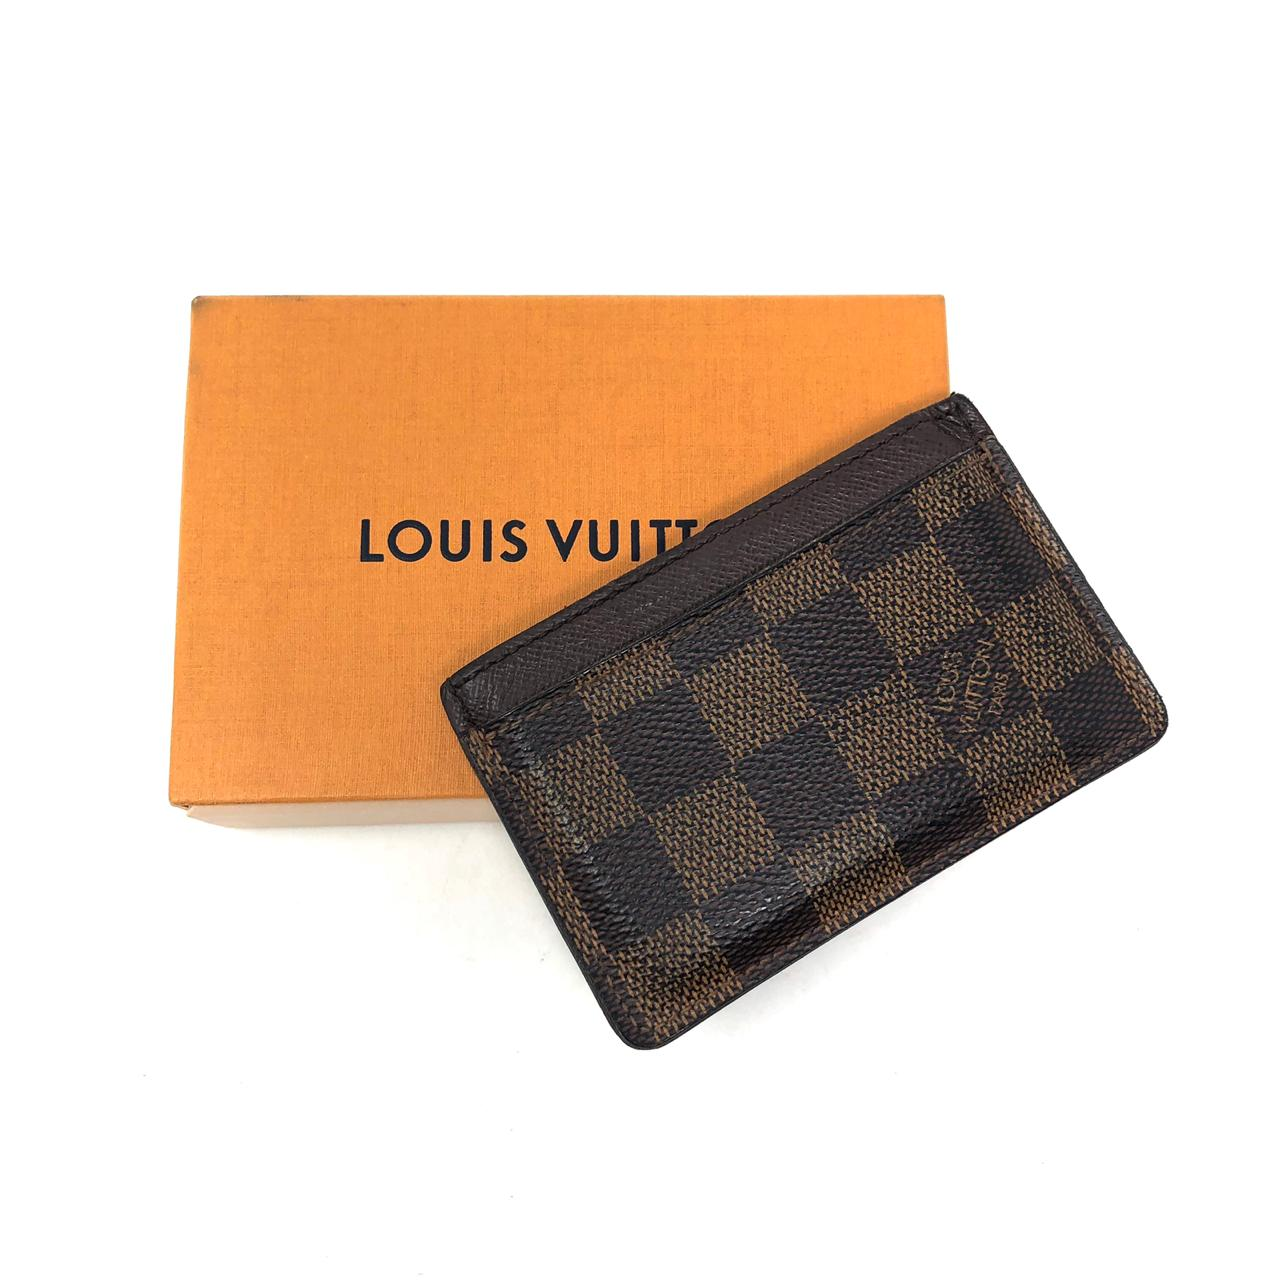 Tarjetero Louis Vuitton